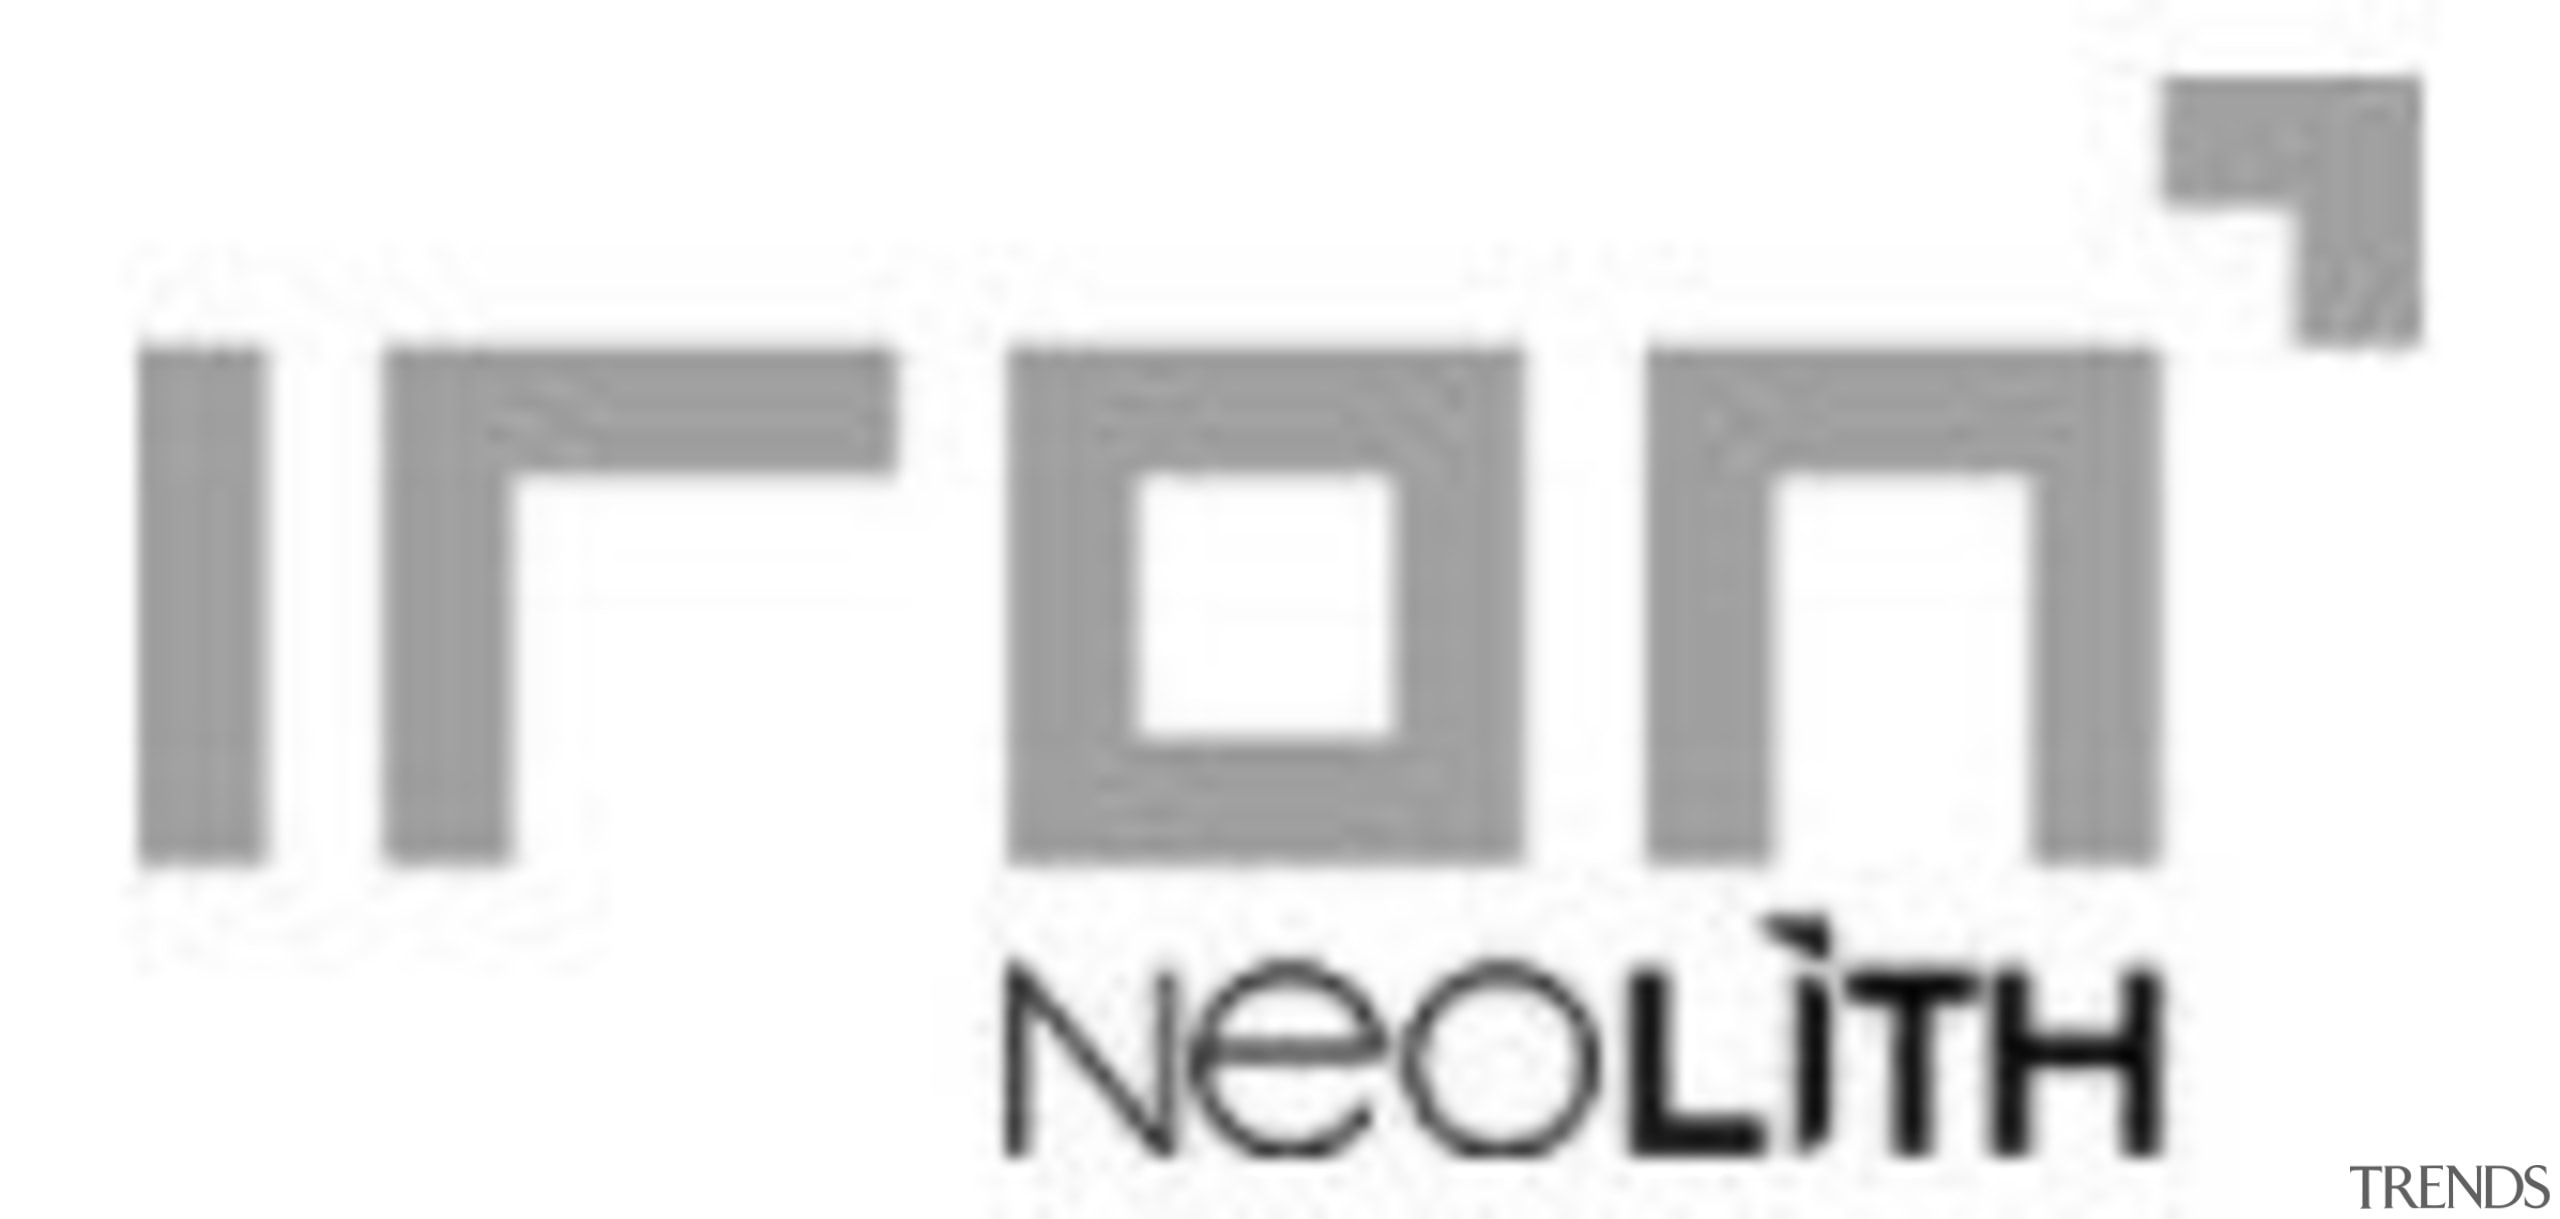 Iron - angle | brand | font | angle, brand, font, line, product, text, white